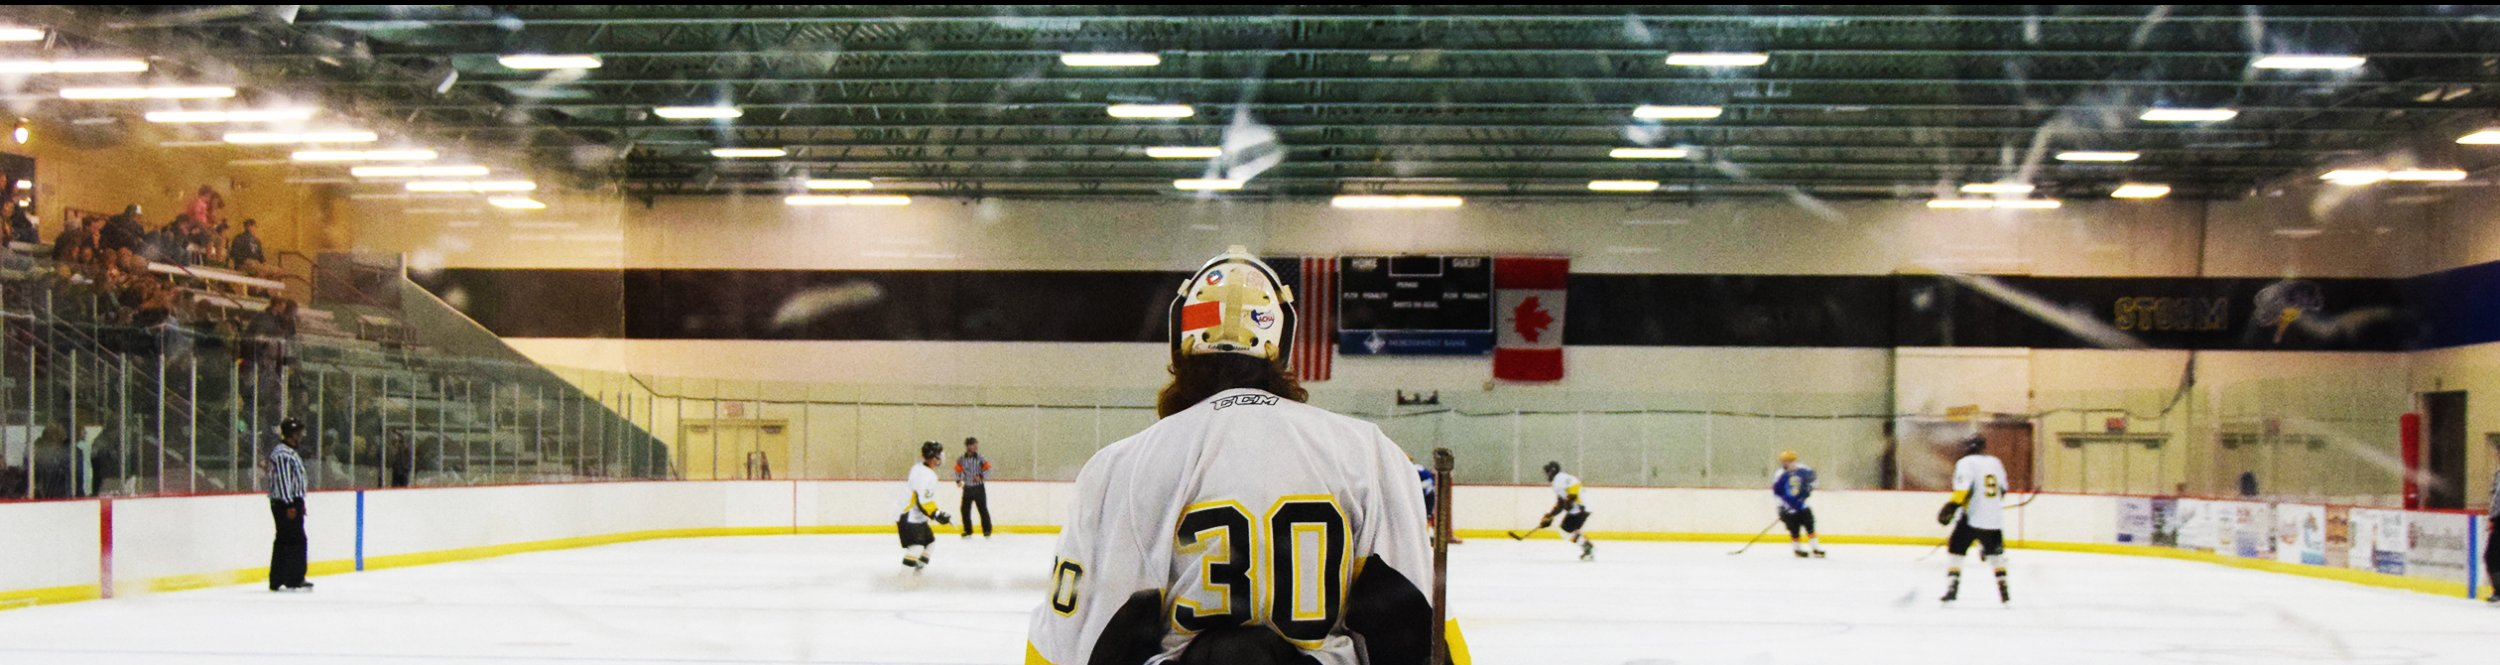 A men's hockey player looks at the entire ice rink.